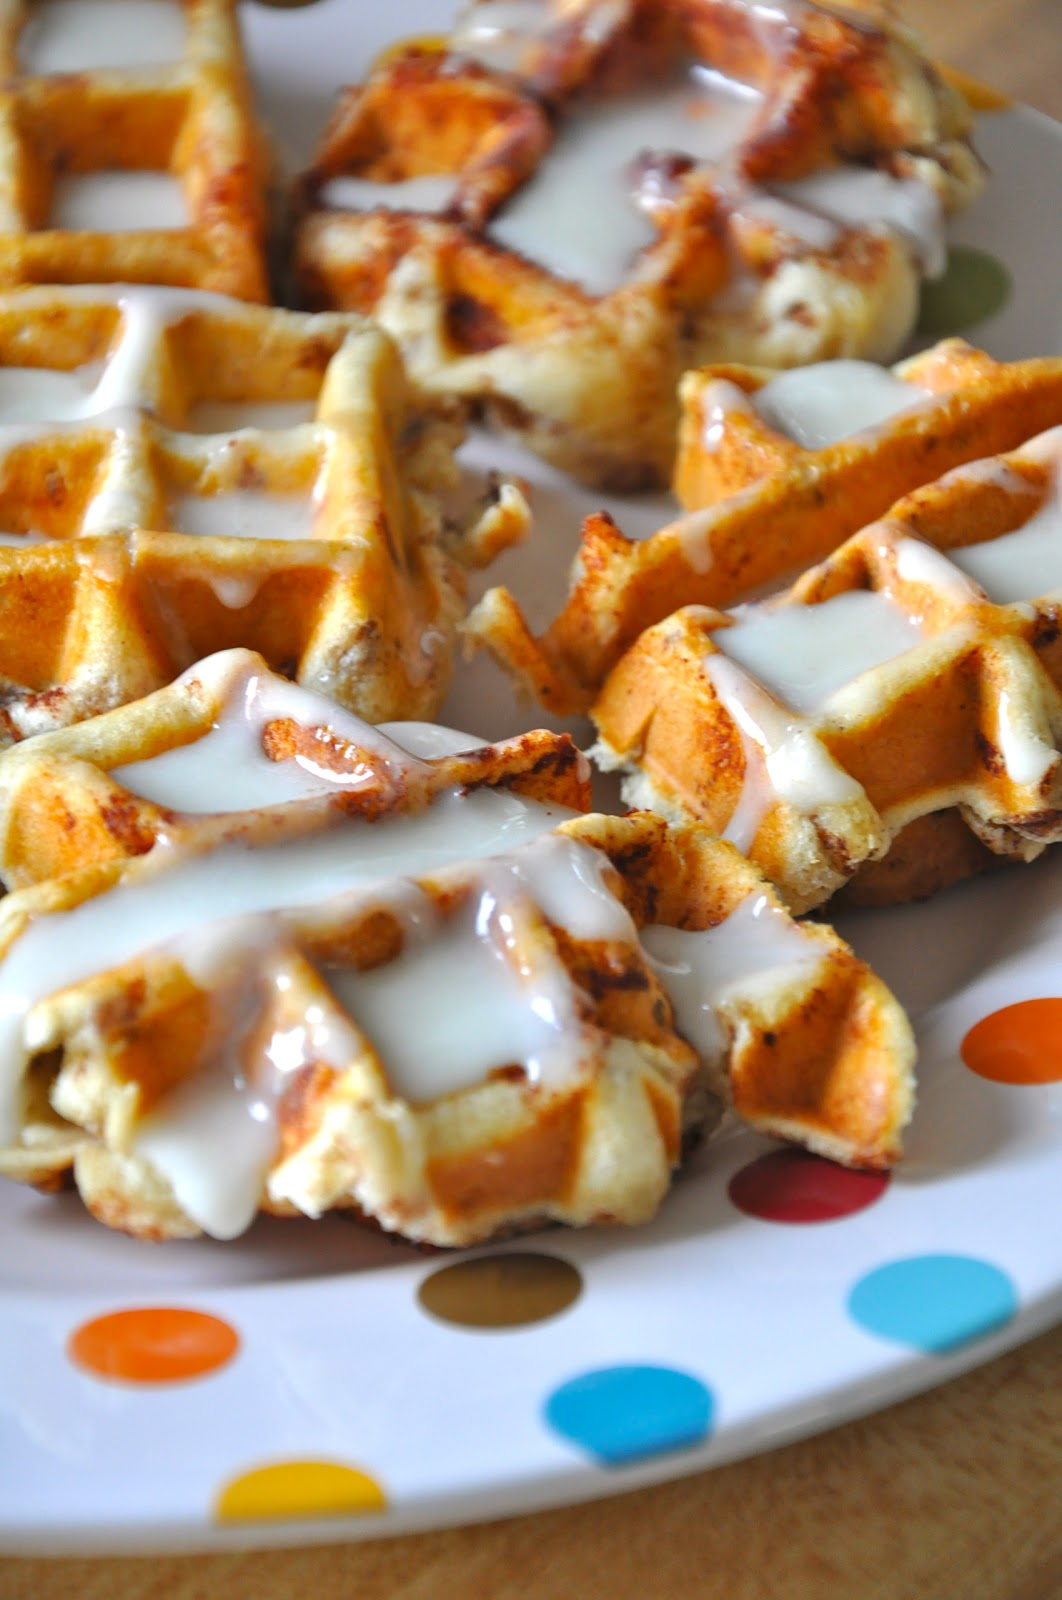 Little Bit Funky: cinnamon rolls in a waffle iron! who knew!!